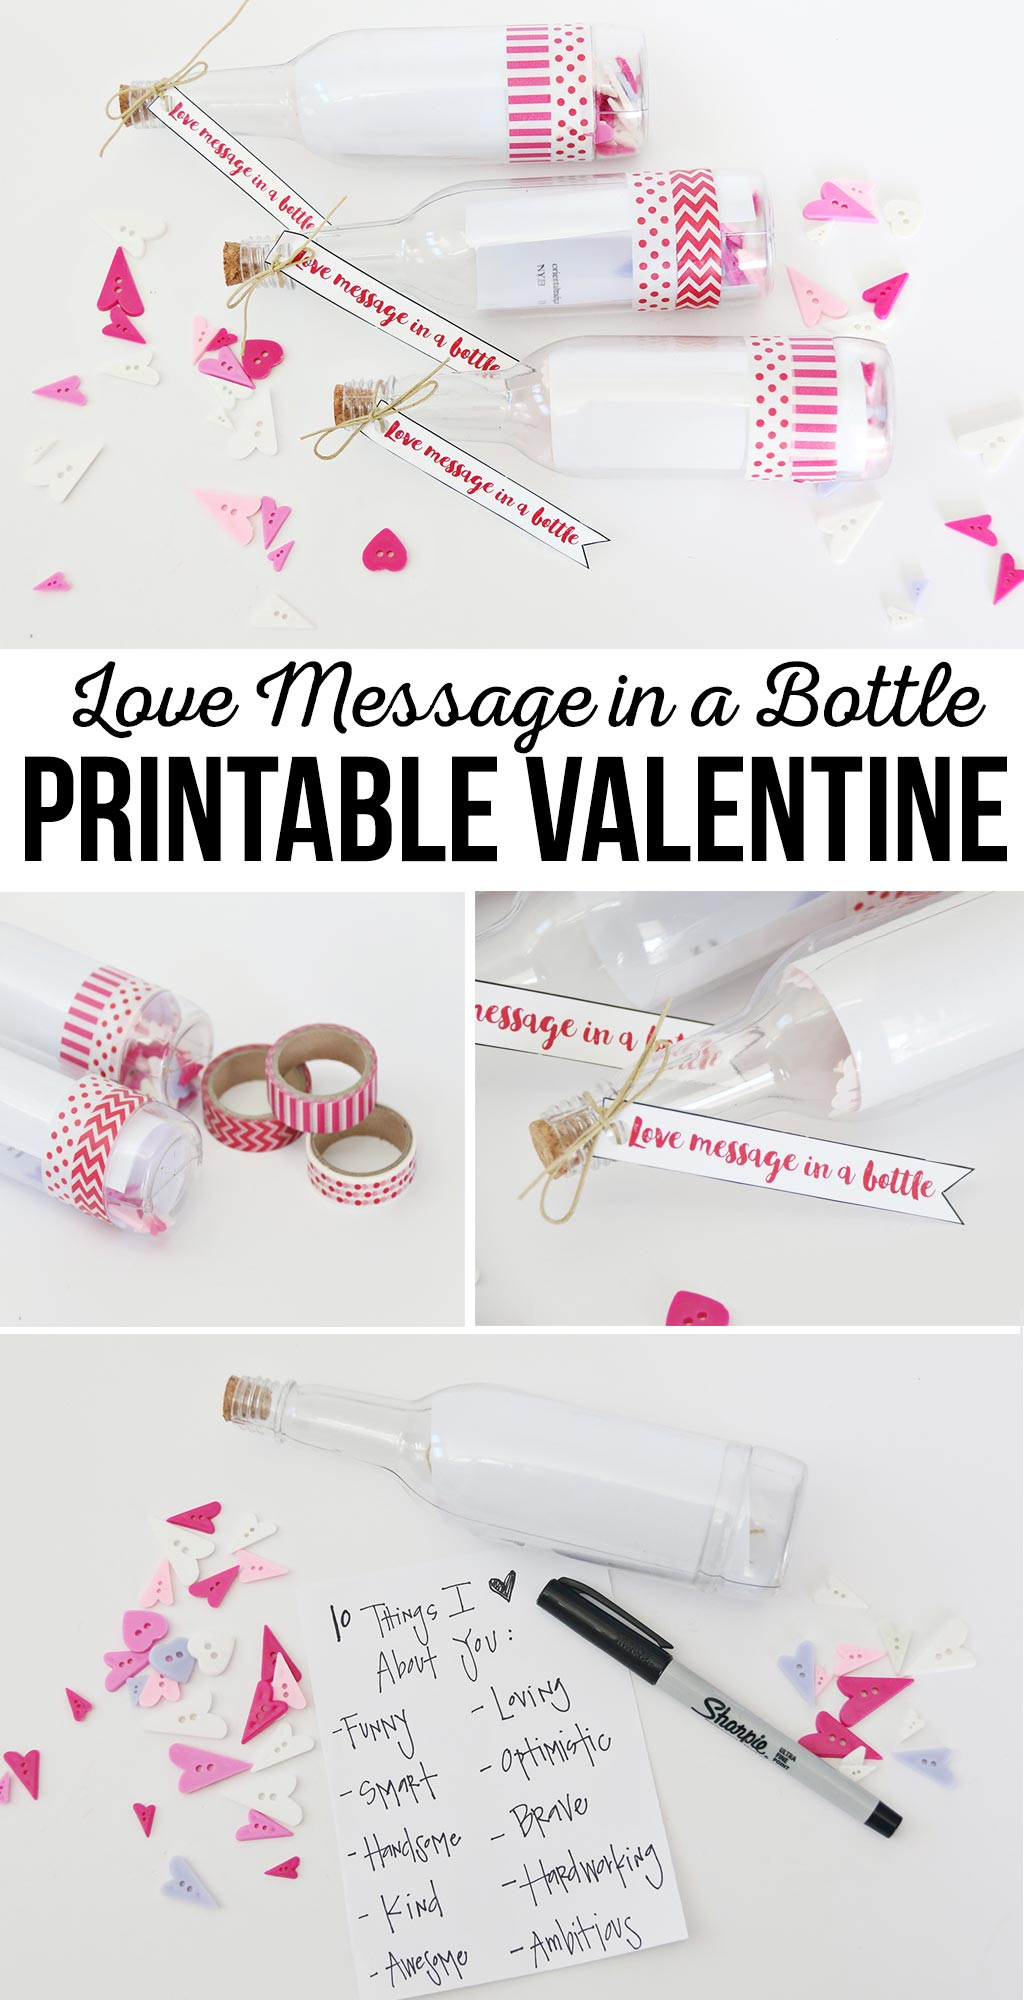 Love Message in a Bottle Printable Valentine